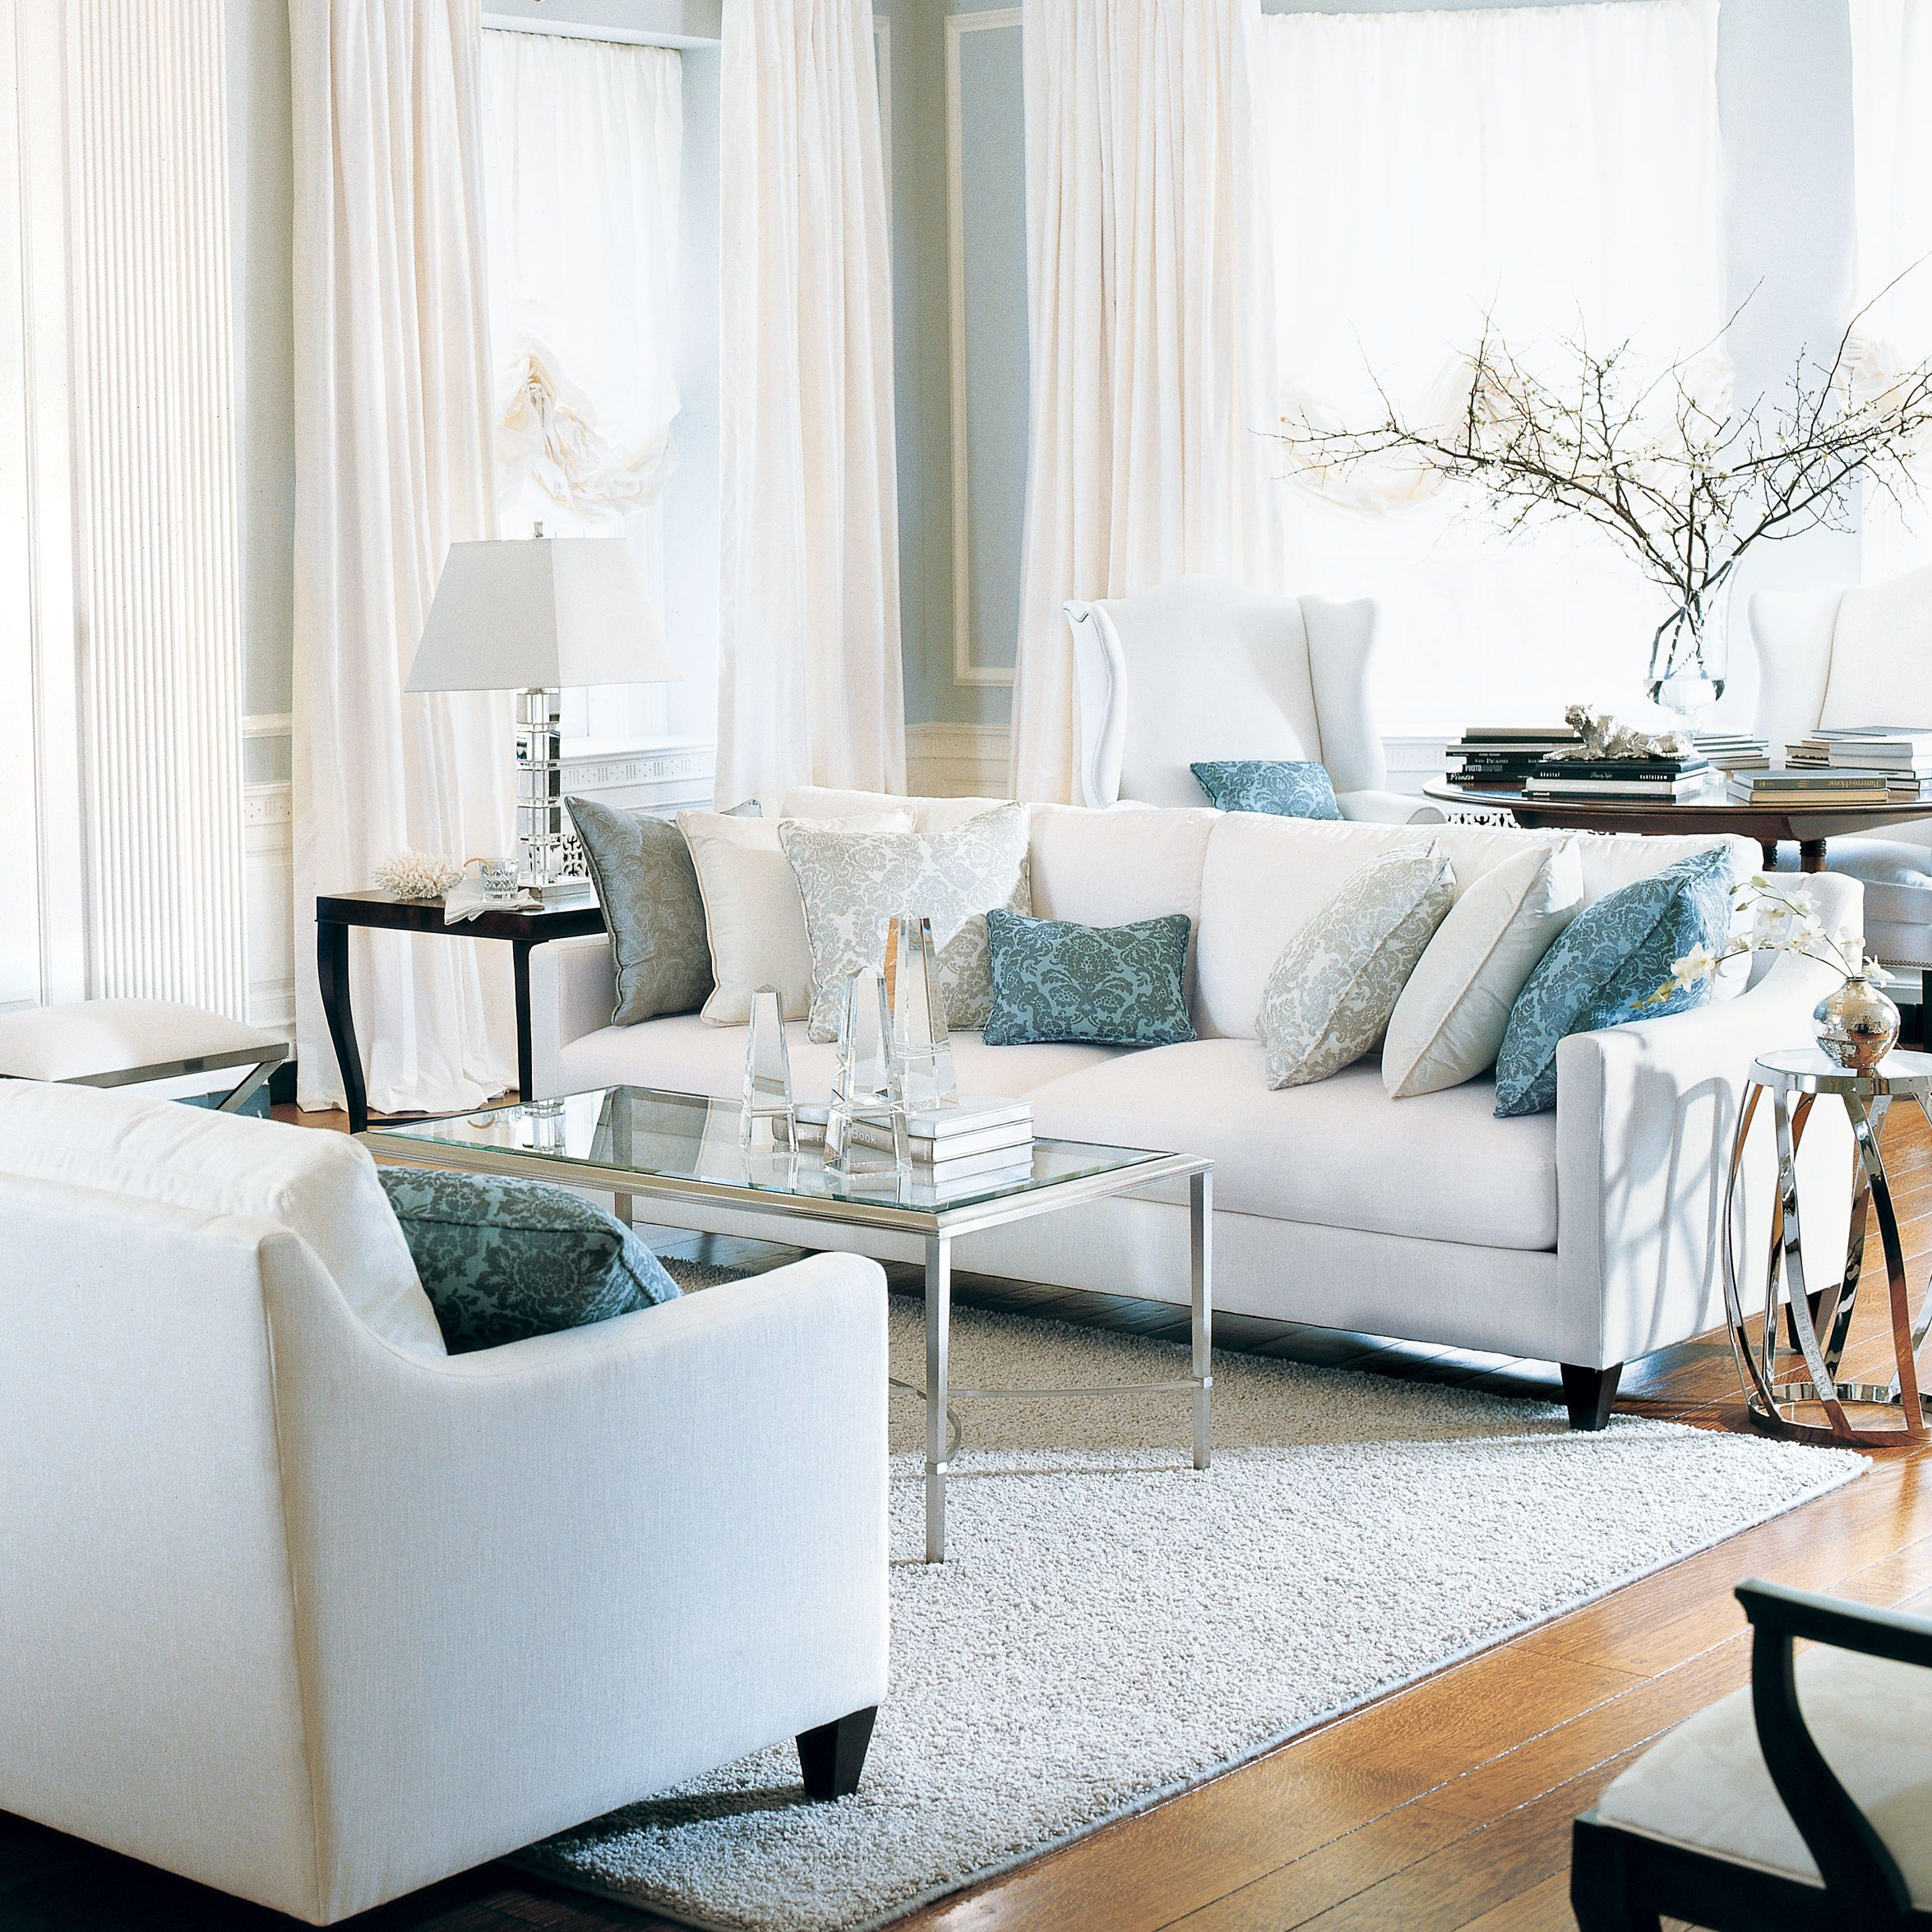 monterey taperedleg sofas and loveseat ethan allen us see more cool cozy sectional sofas awesome cozy sectional sofas 44 for your sofa room ideas